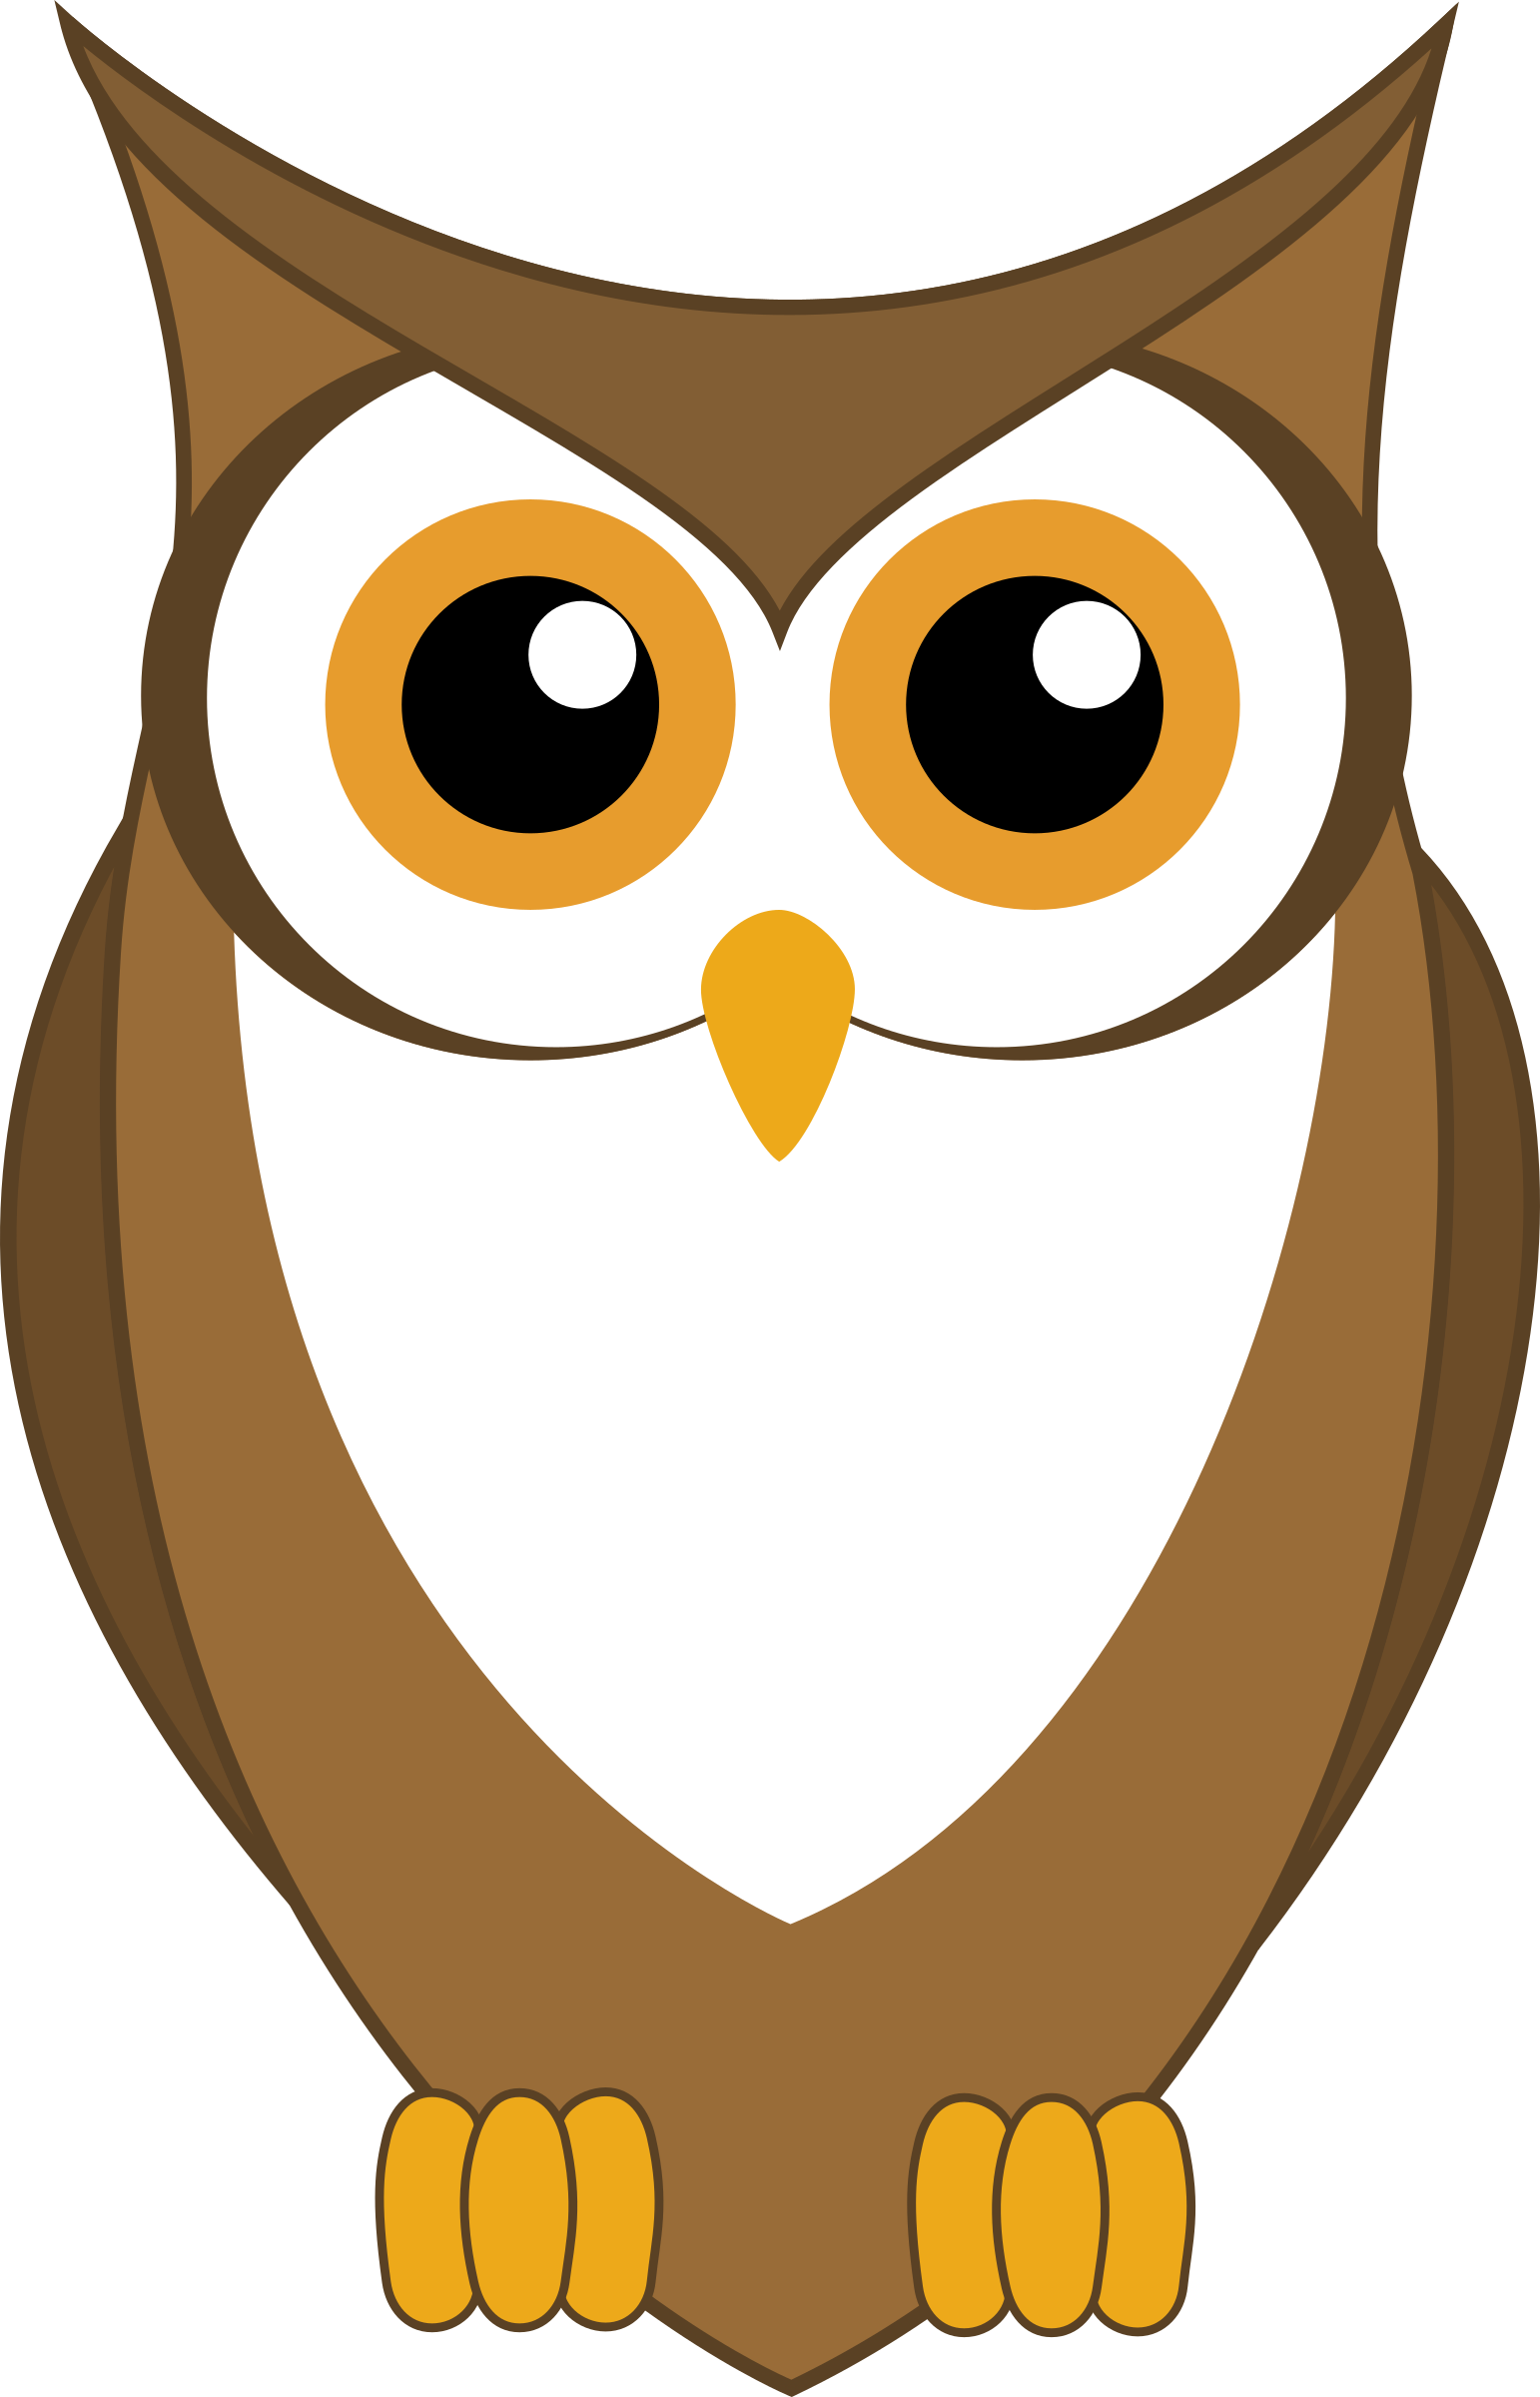 image royalty free stock Years clipart owl. Vector big image png